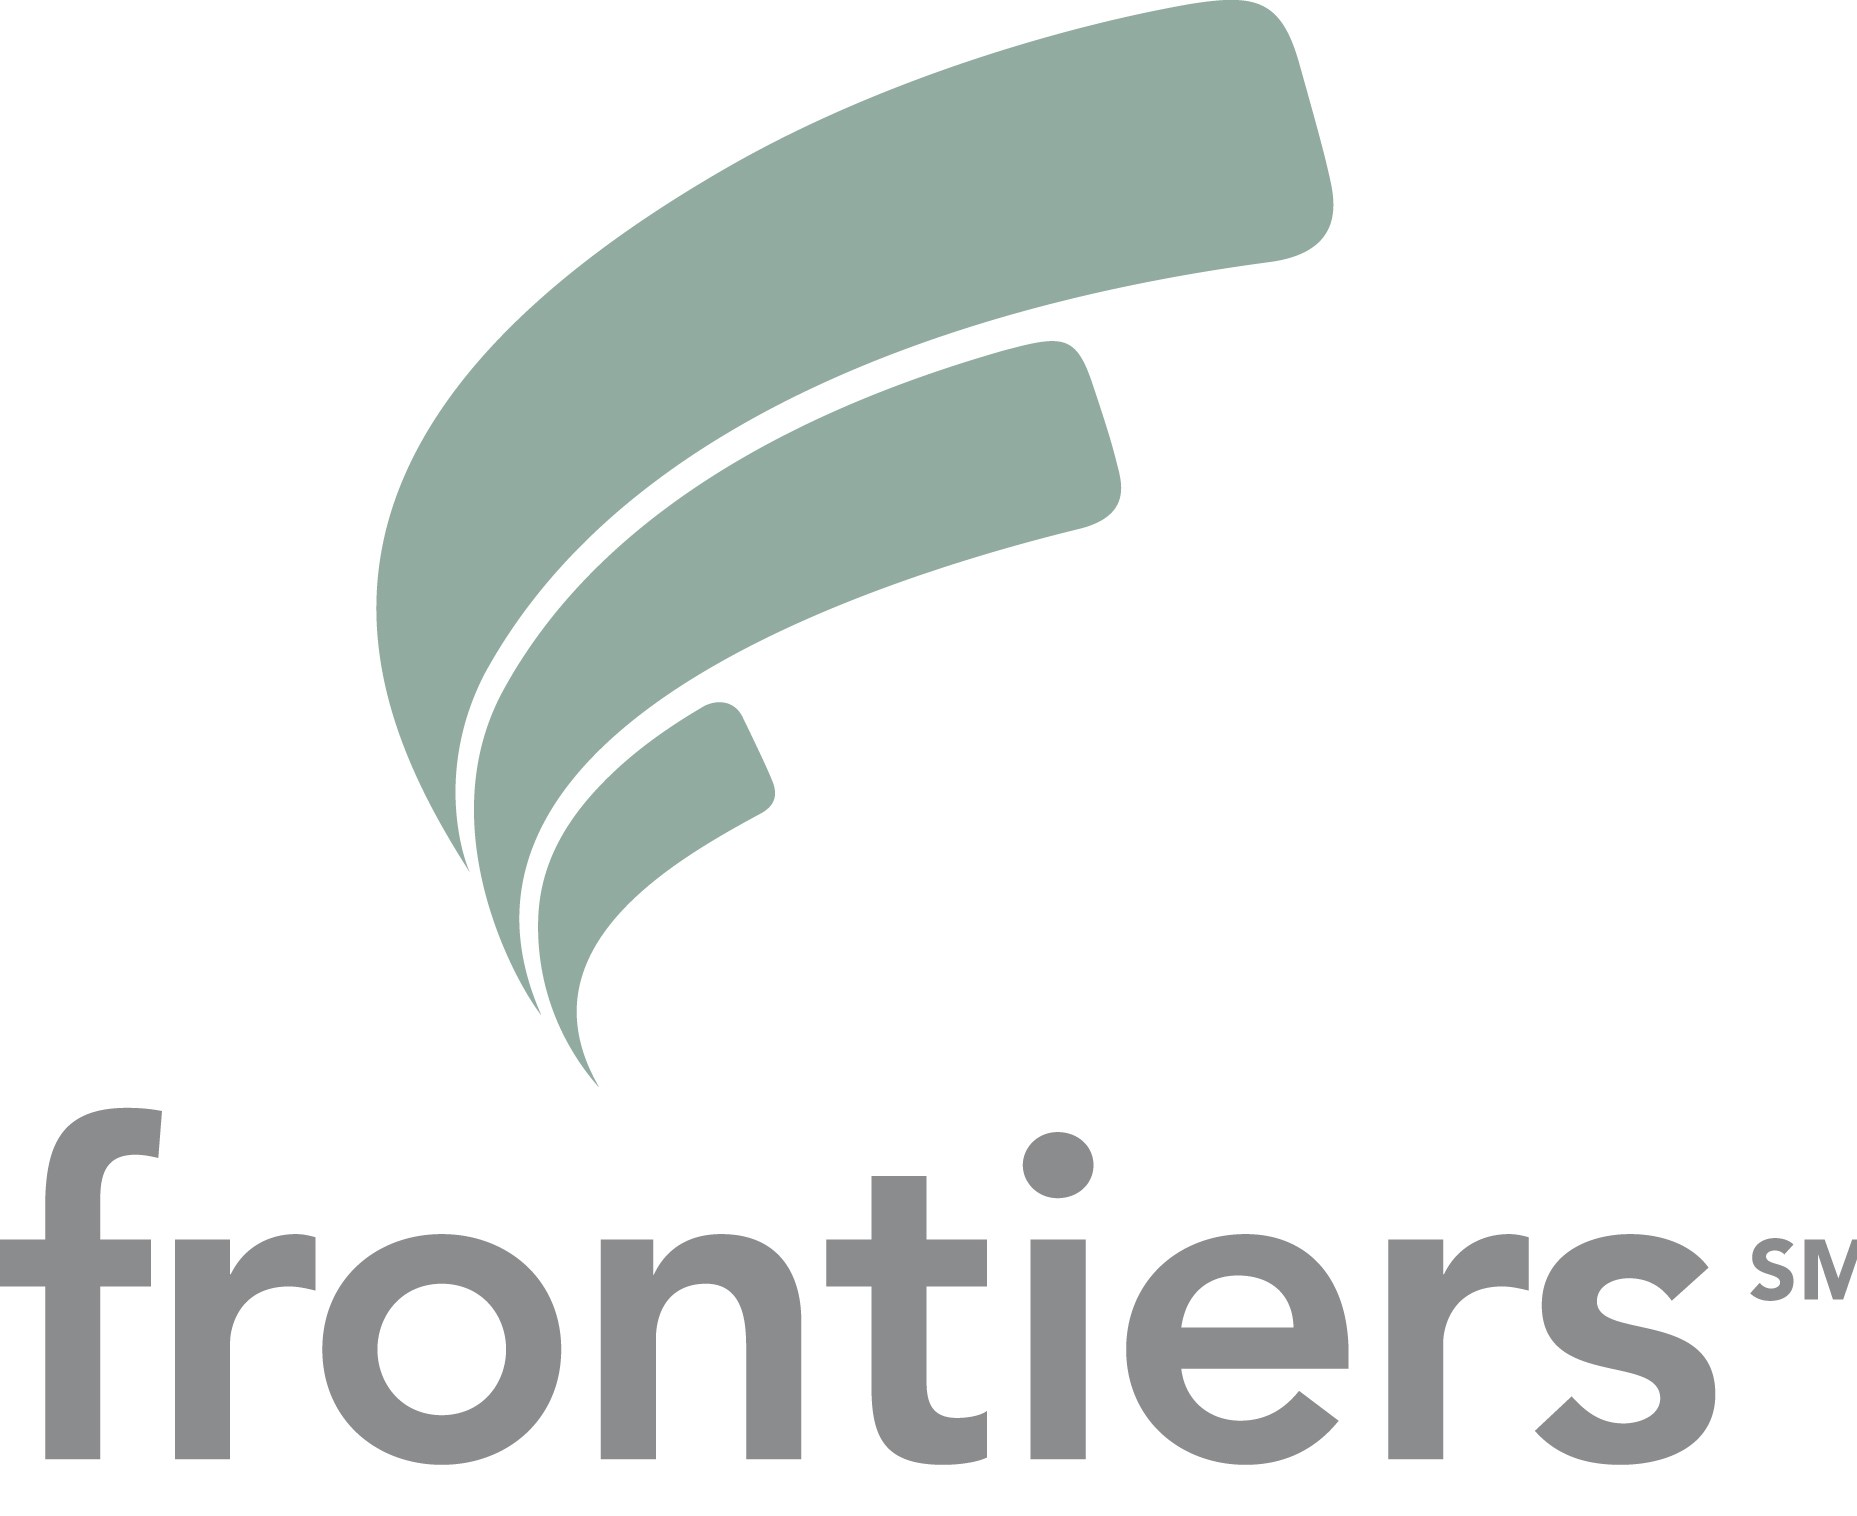 Frontiers Missions